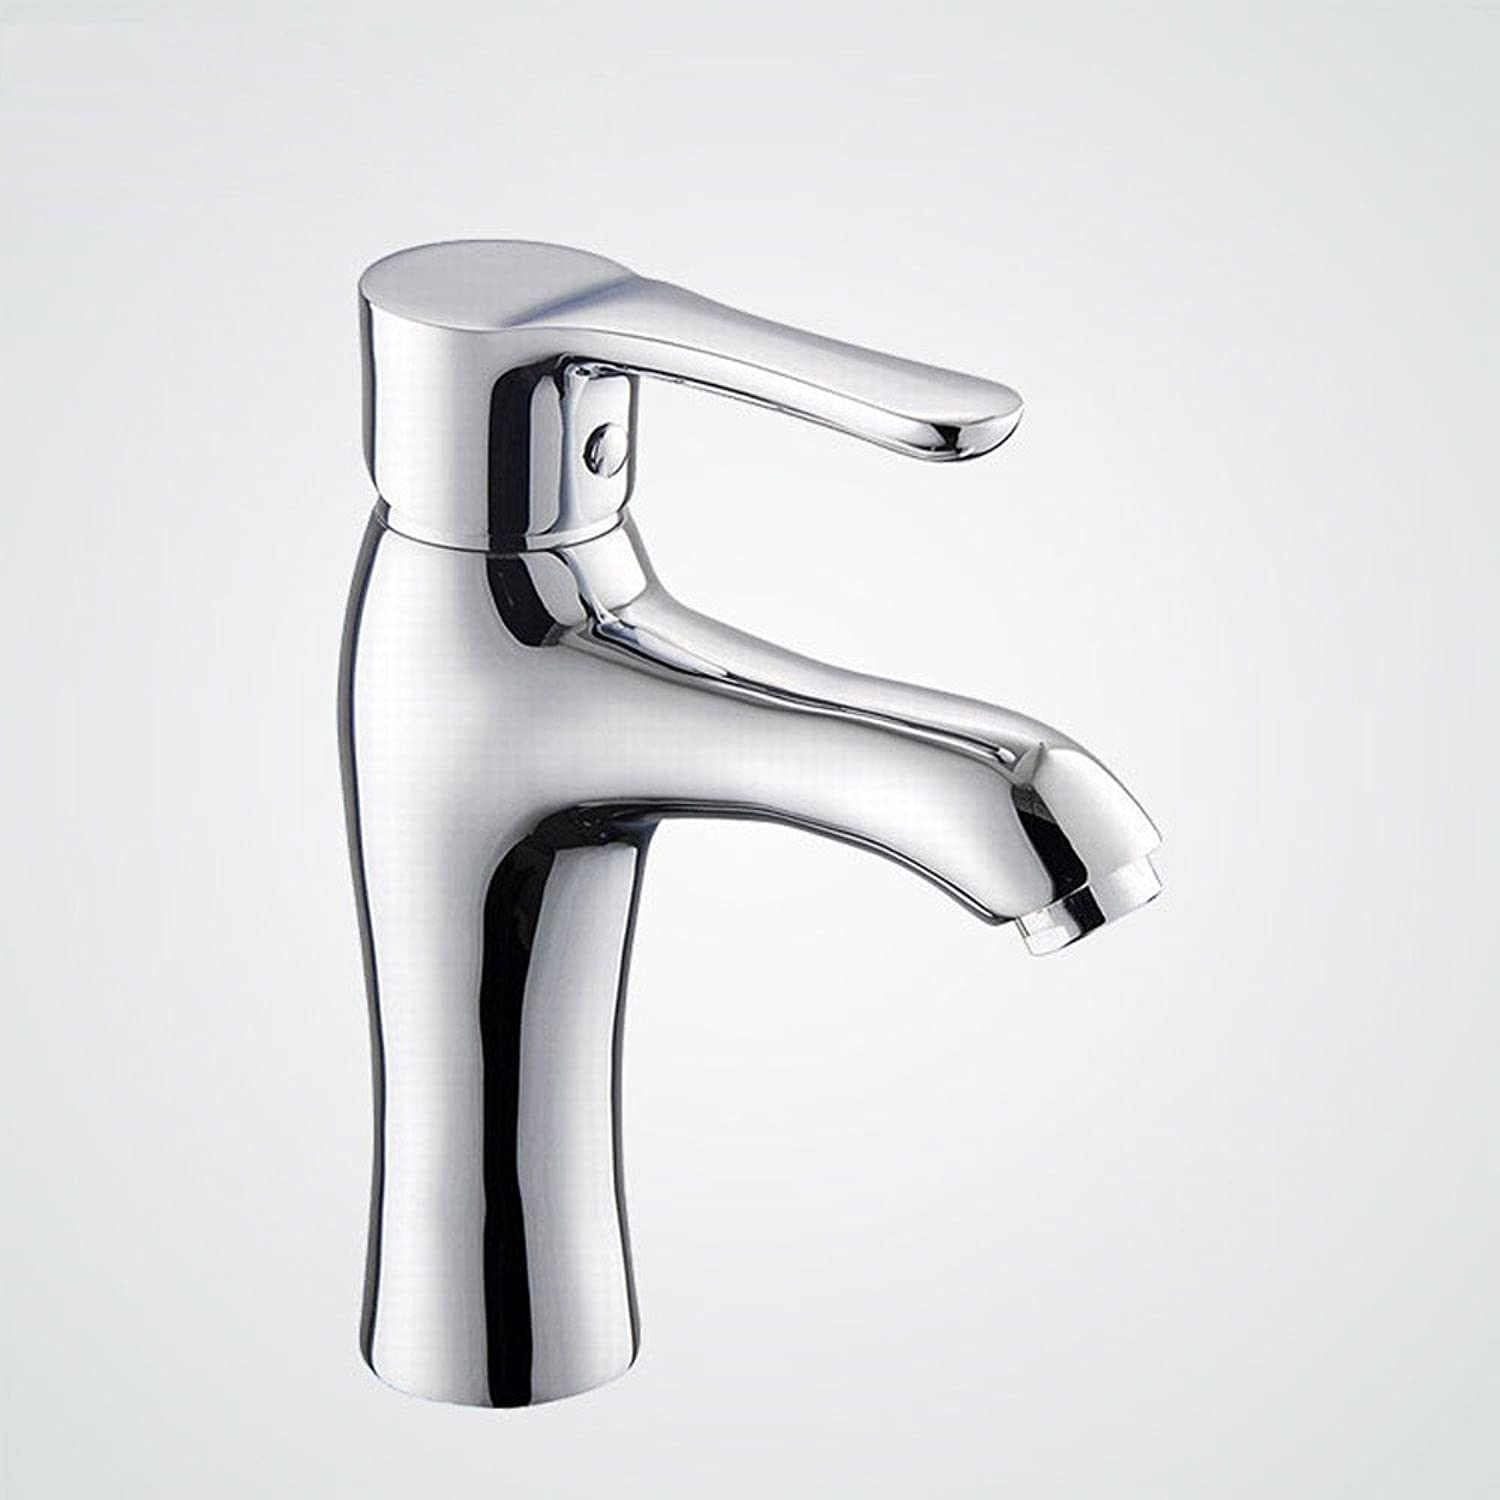 MDRW-Bathroom Accessories Basin Faucet Cu All Basin Mixer Wash Basin Mixer Basin Mixer